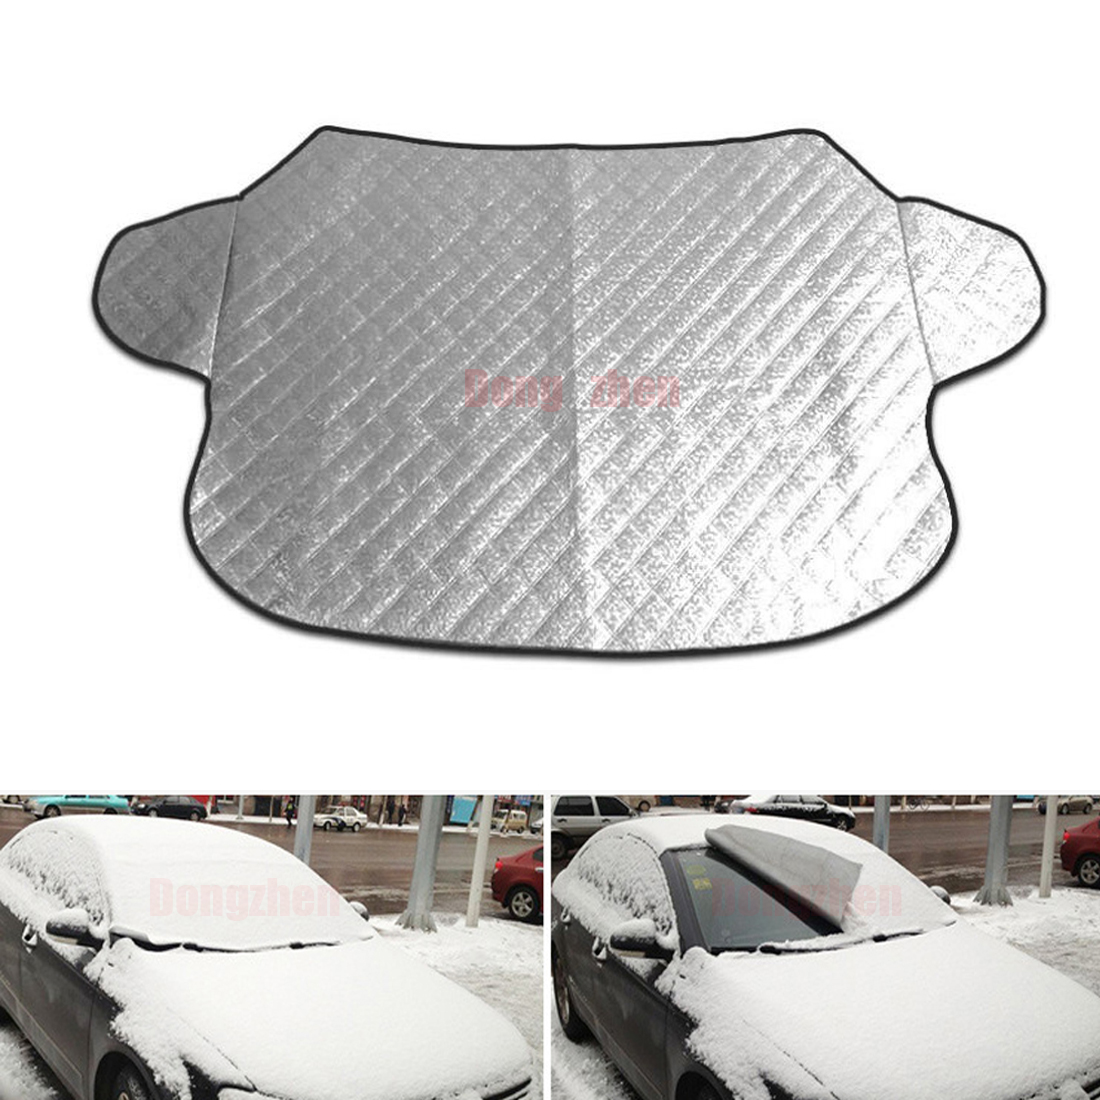 Dongzhen Auto Window Sunshade Covers Car Sun Reflective Shade Windshield Snow Cover For SUV And Ordinary Car Window Sunshade